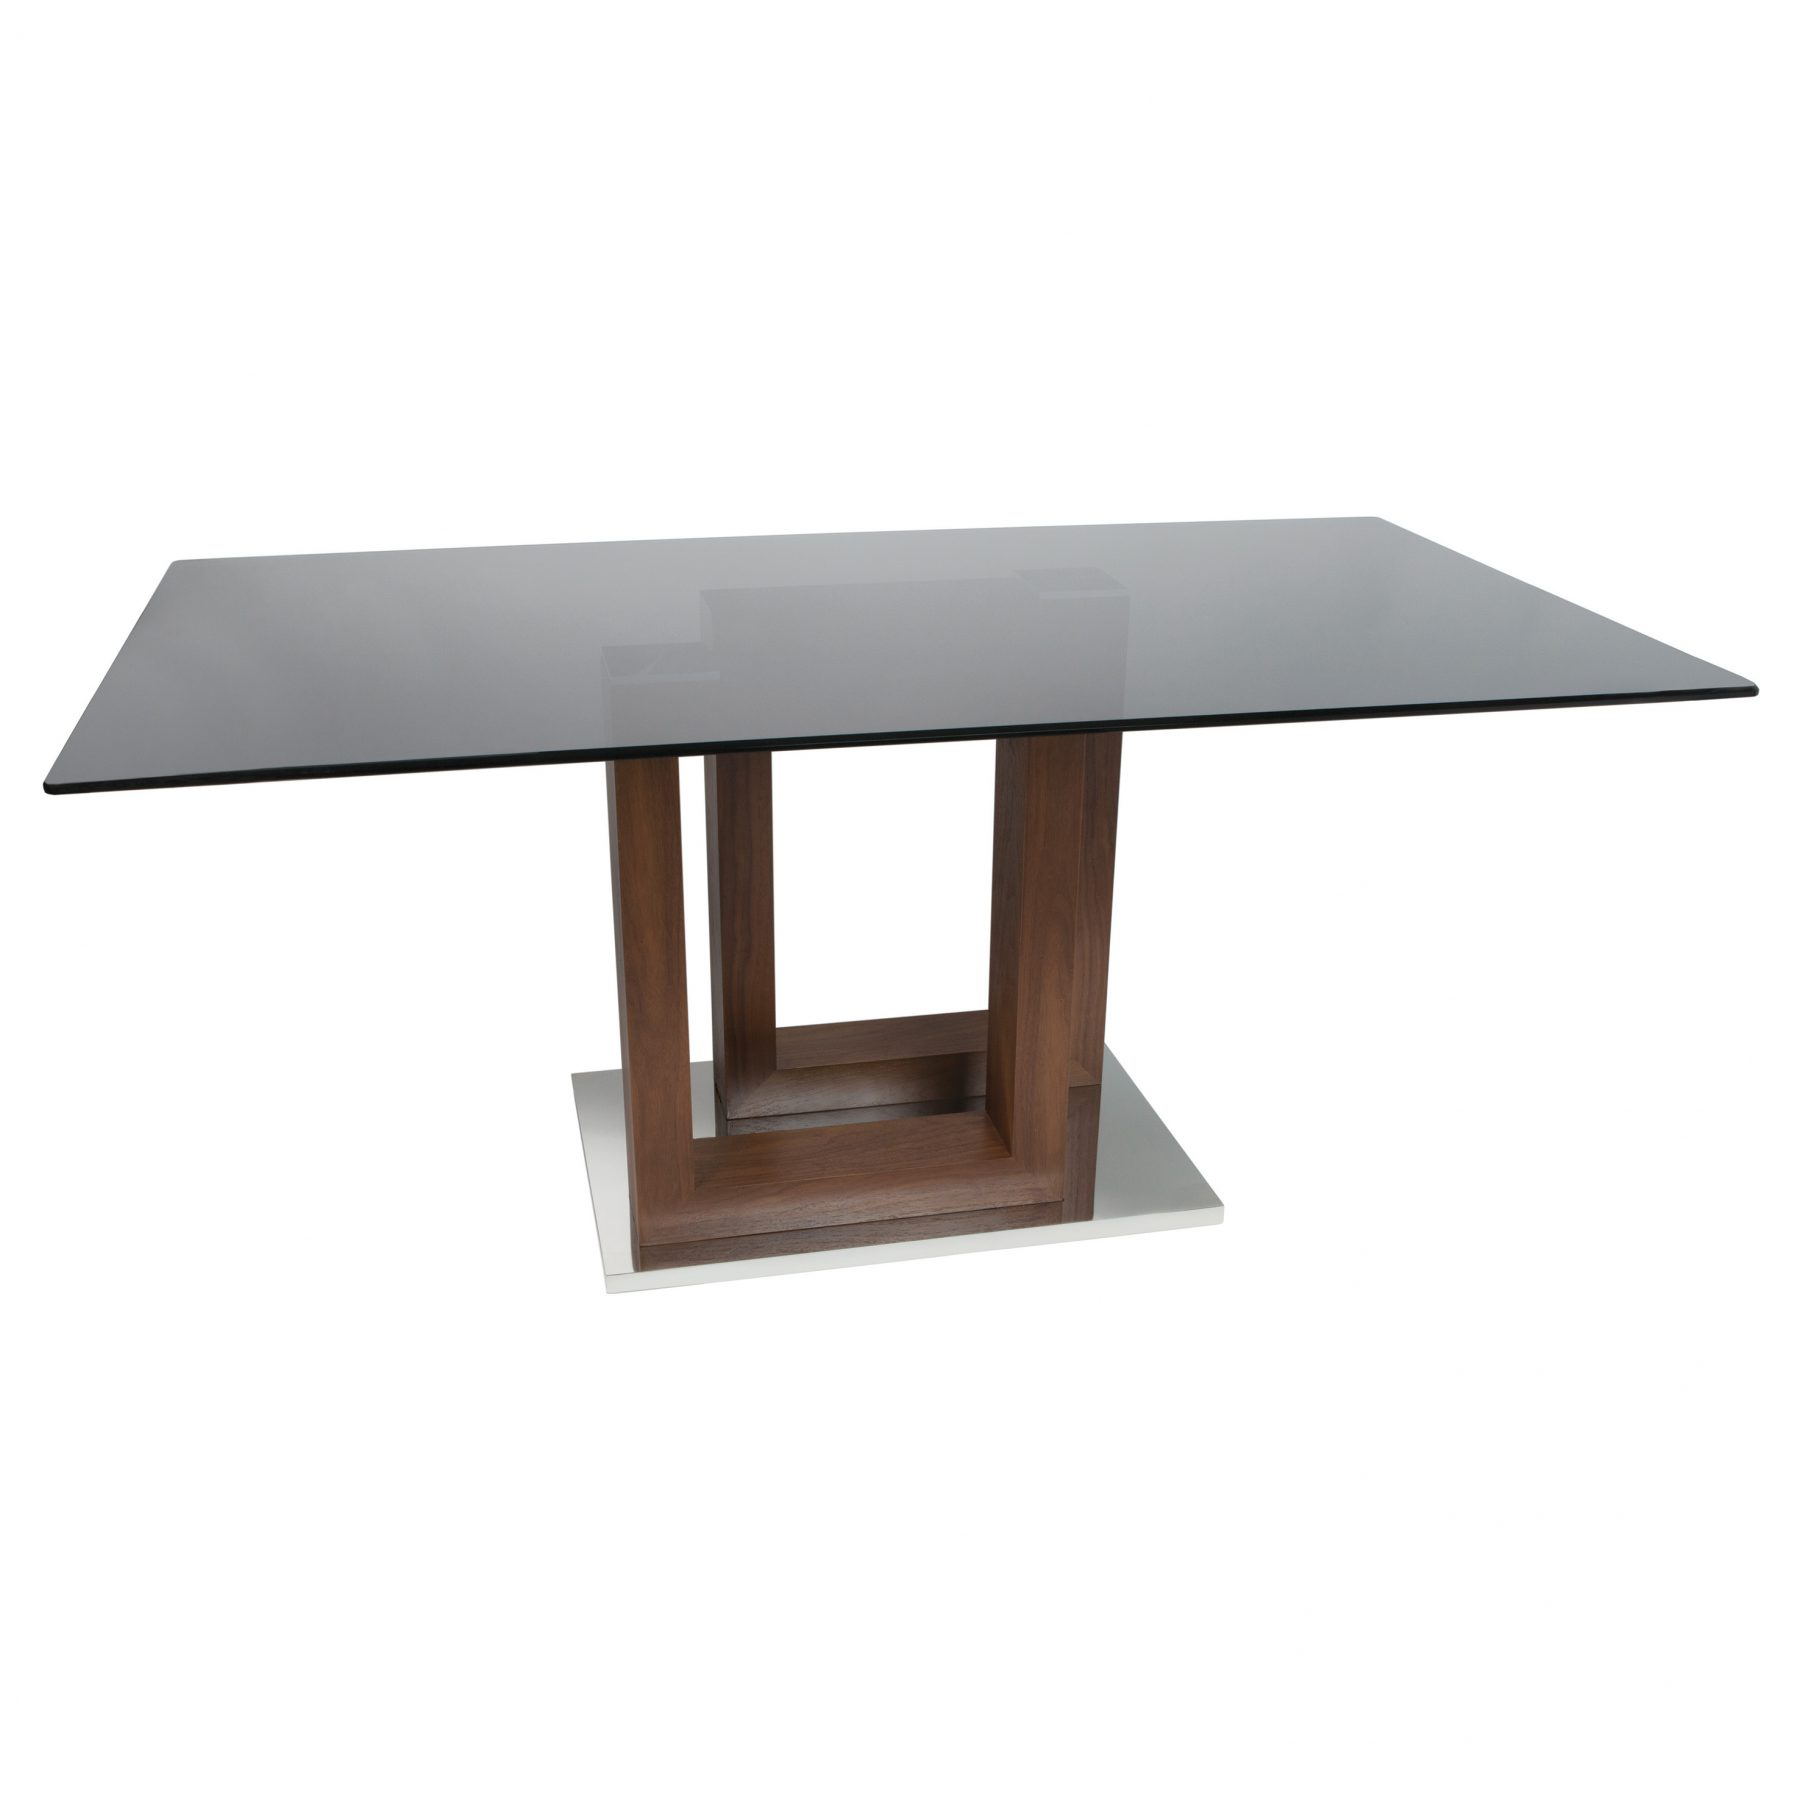 Autumn Smoked Glass Dining Table 6 - 8 Seater